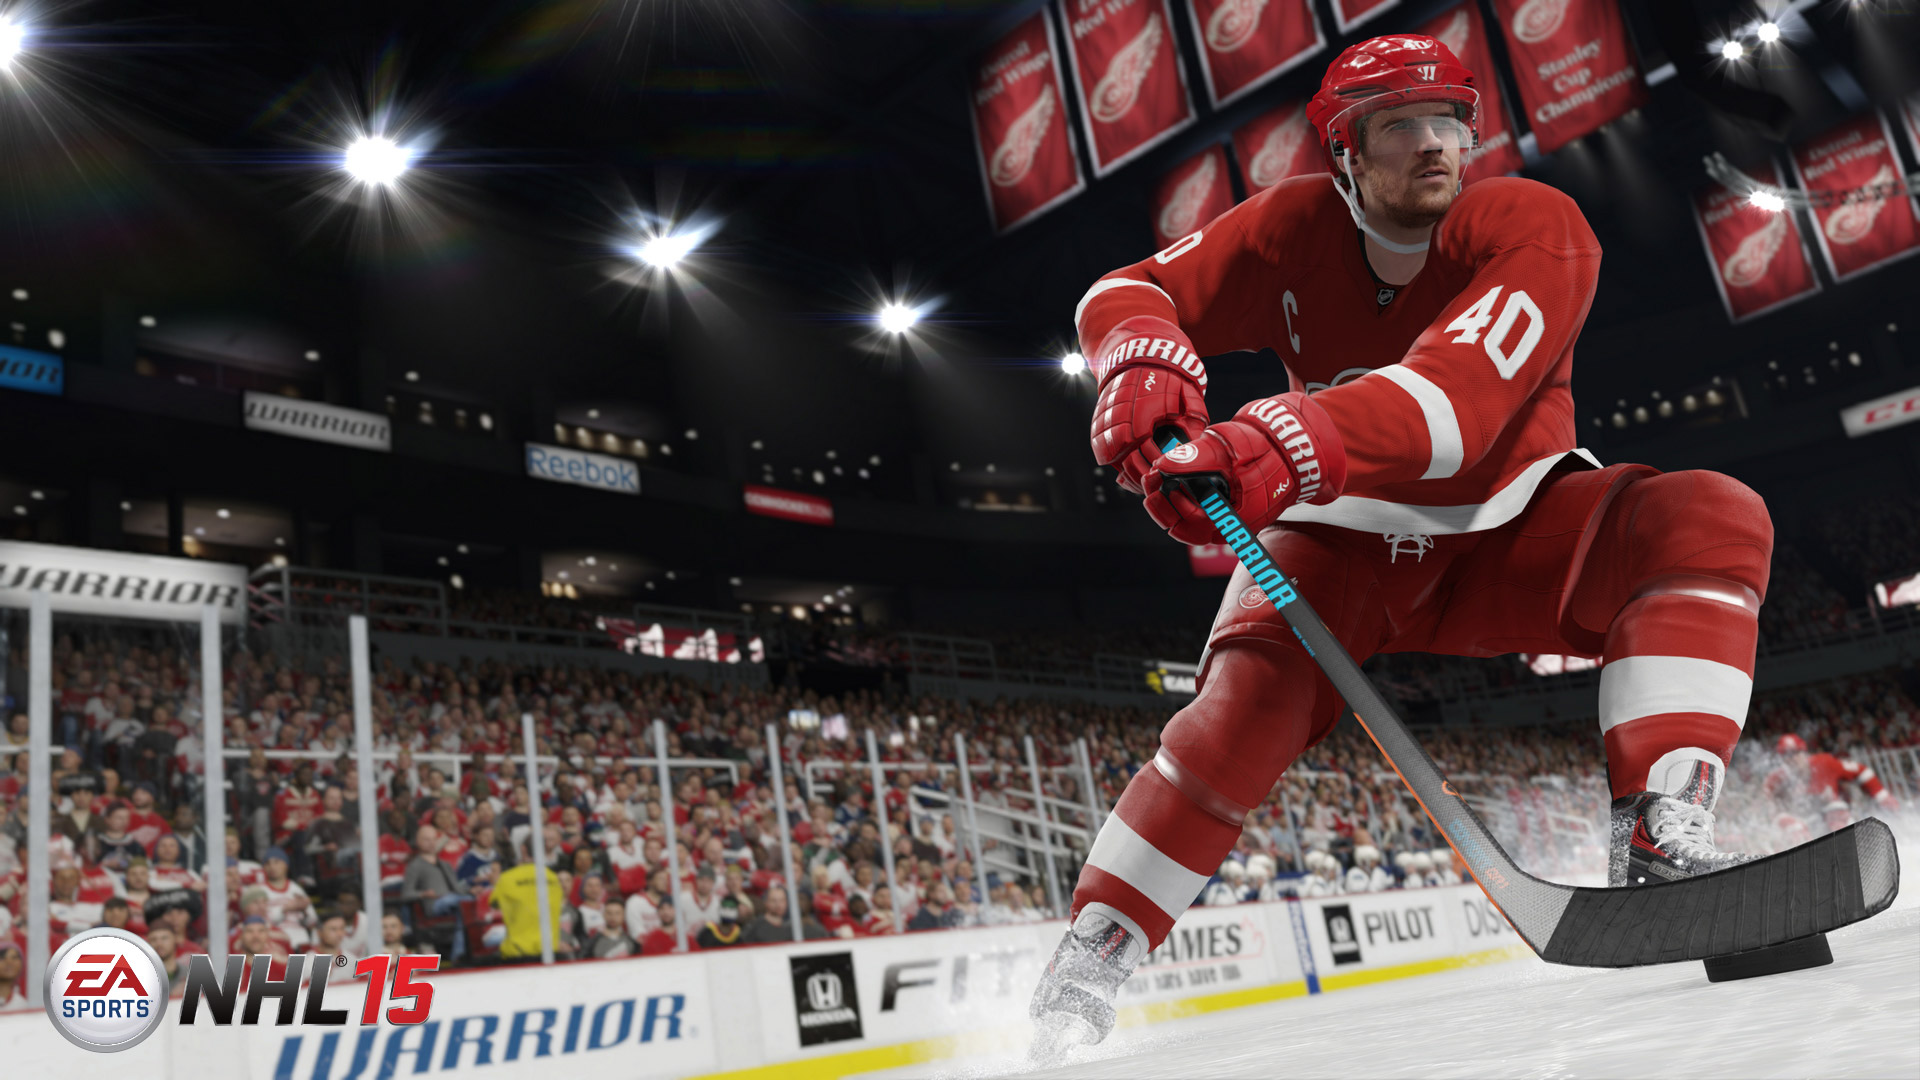 NHL 15 Wallpaper in 1920x1080